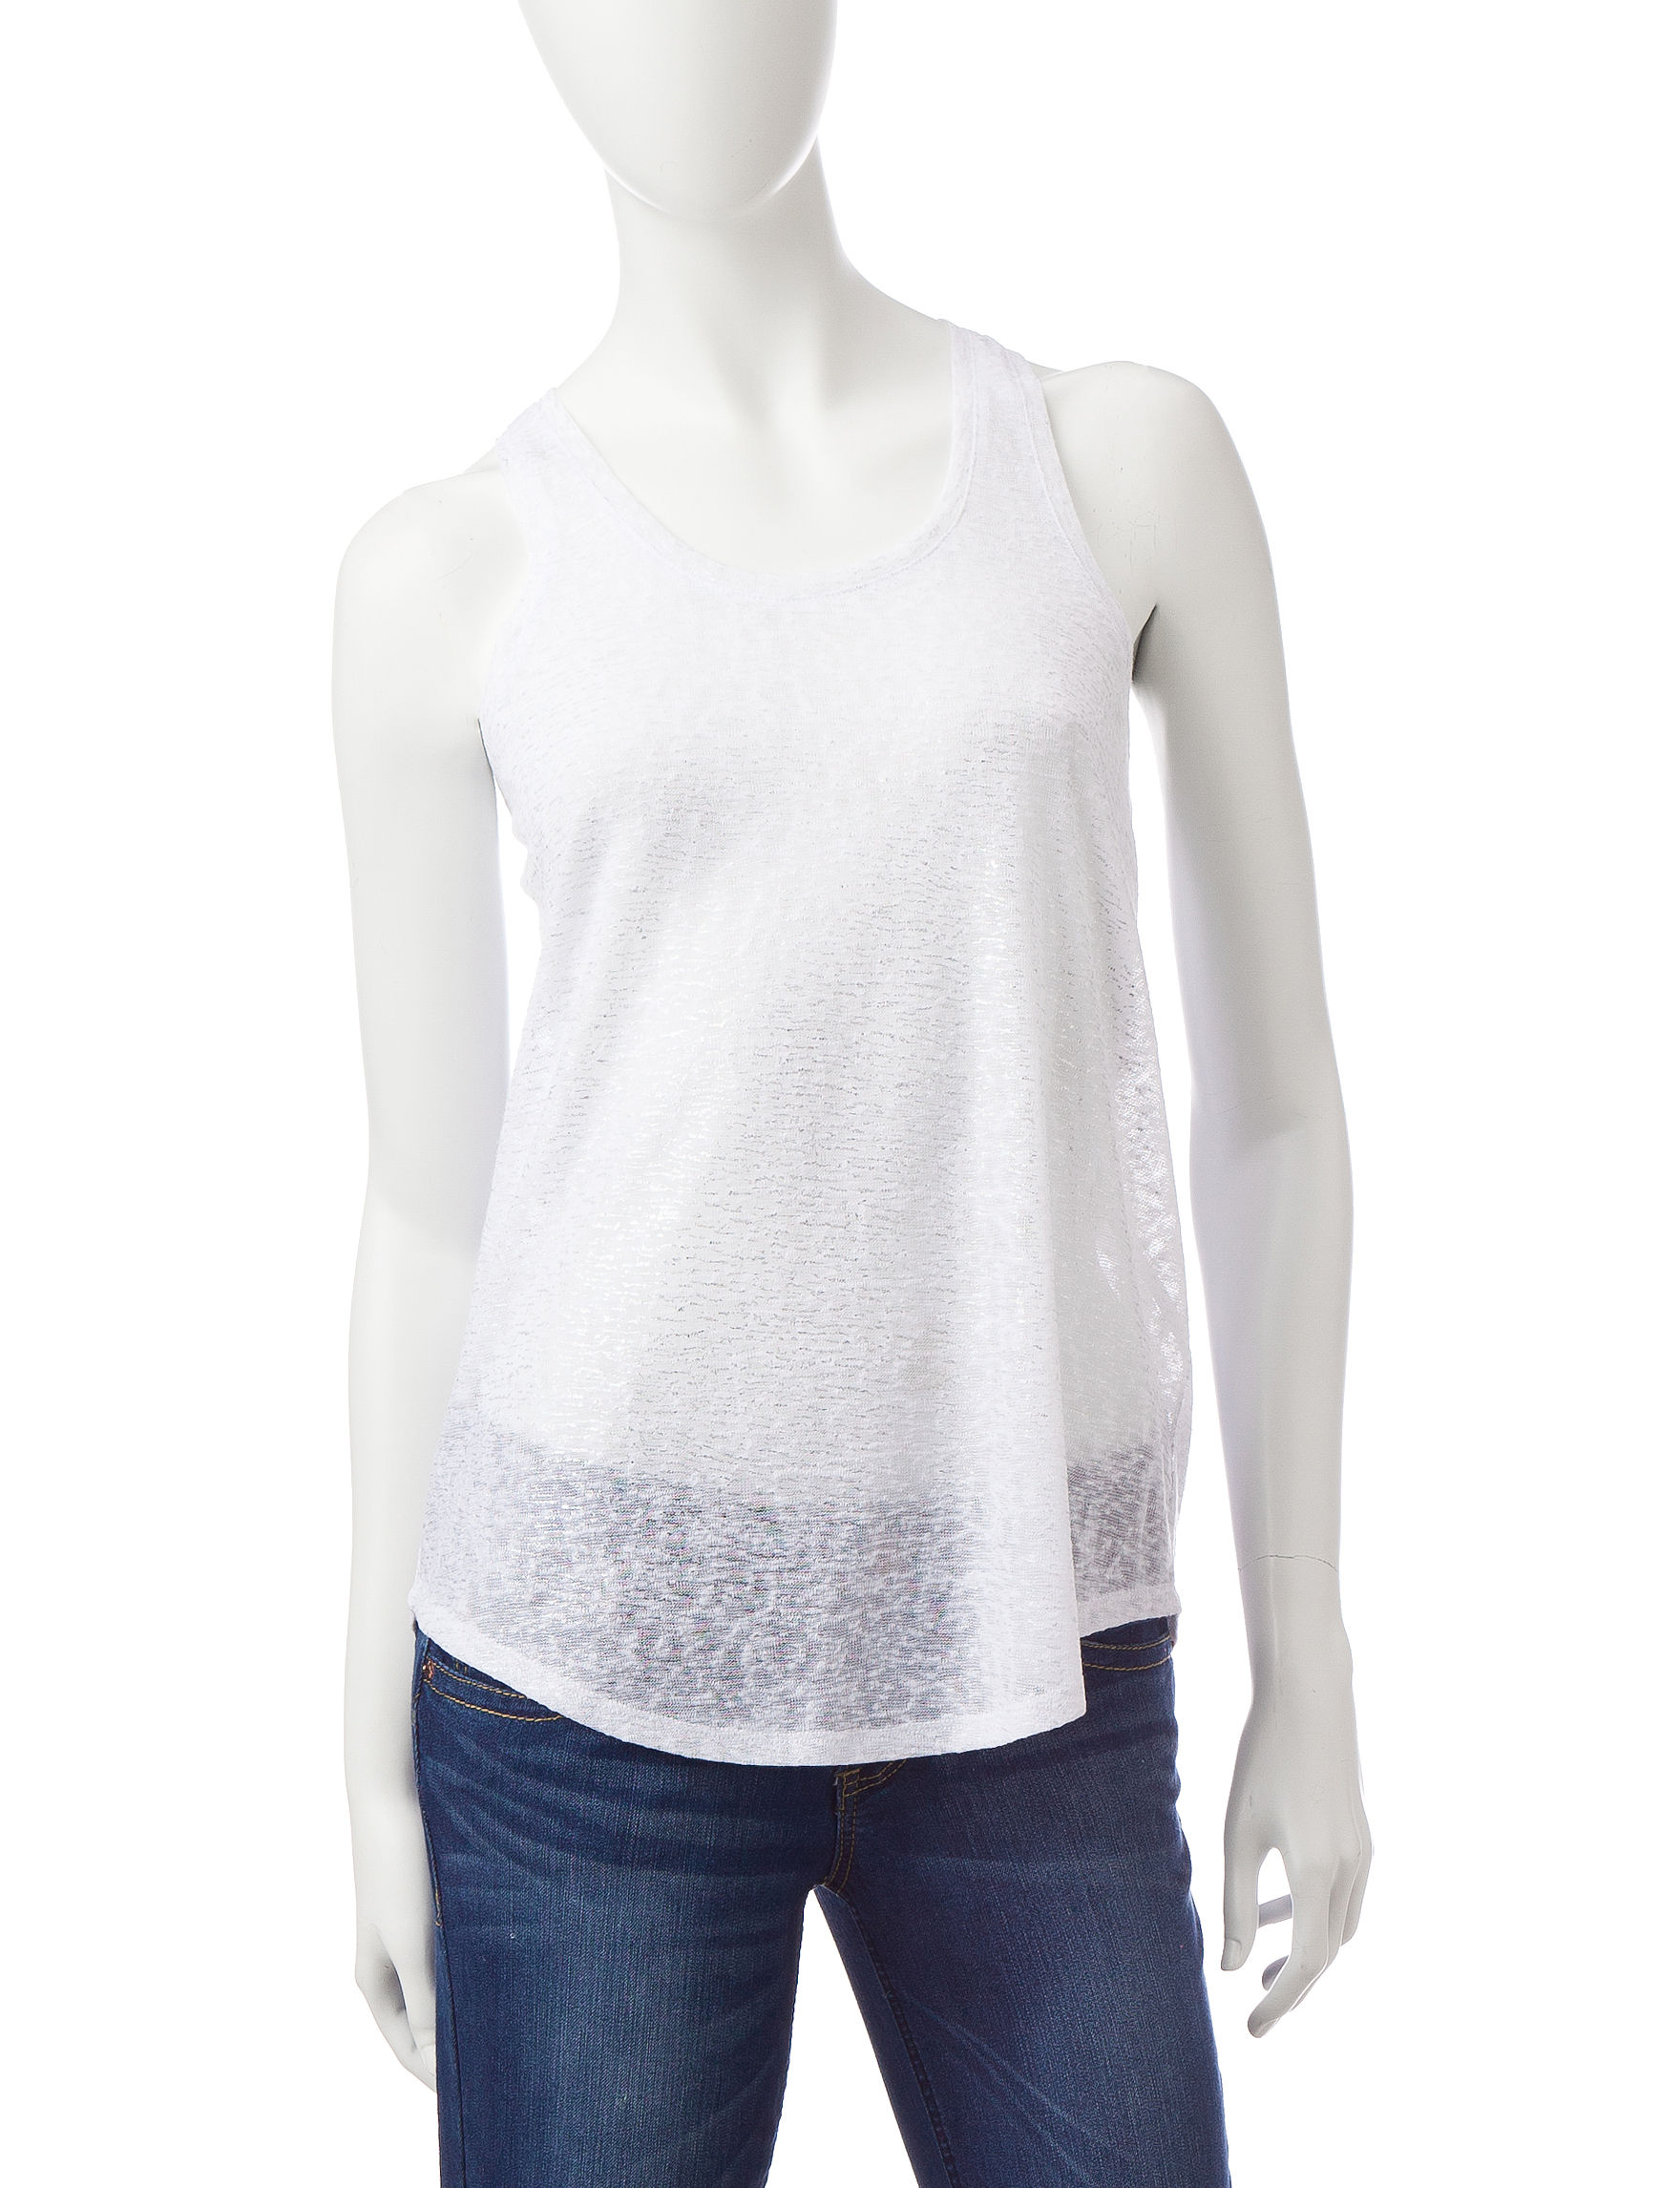 Jessica Simpson Bright White Tees & Tanks